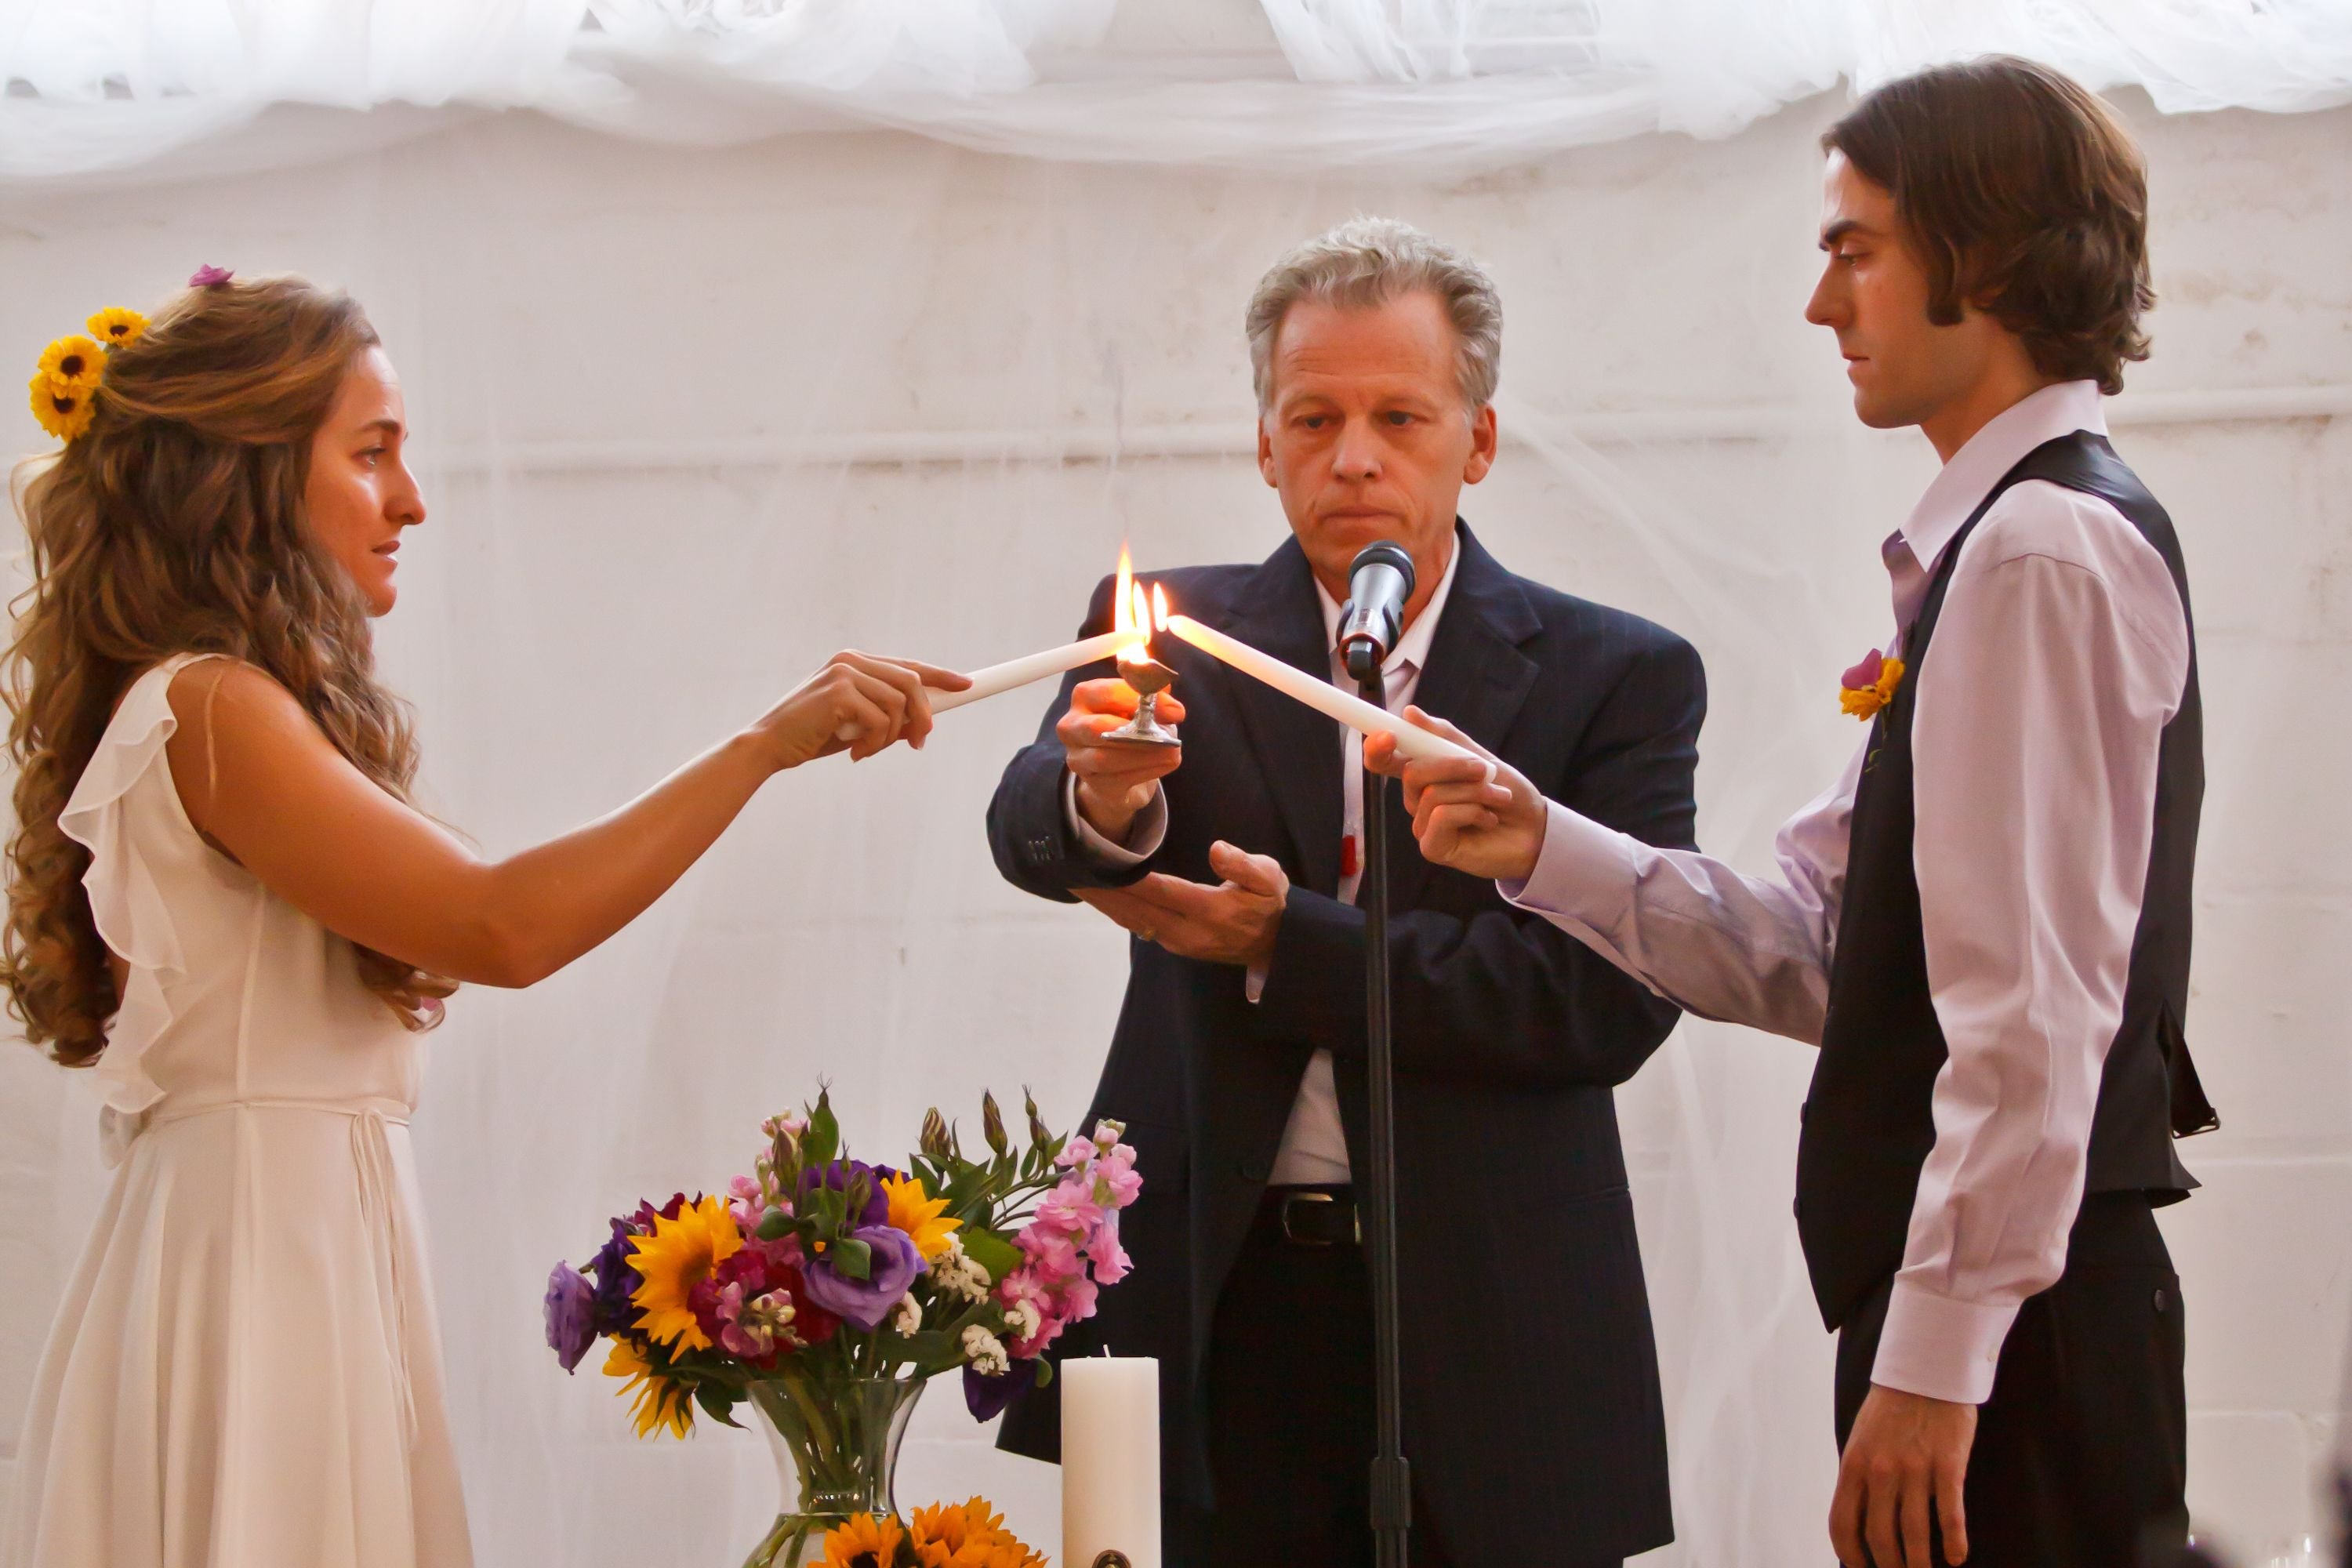 Pic - Ceremonies - Wedding 3A